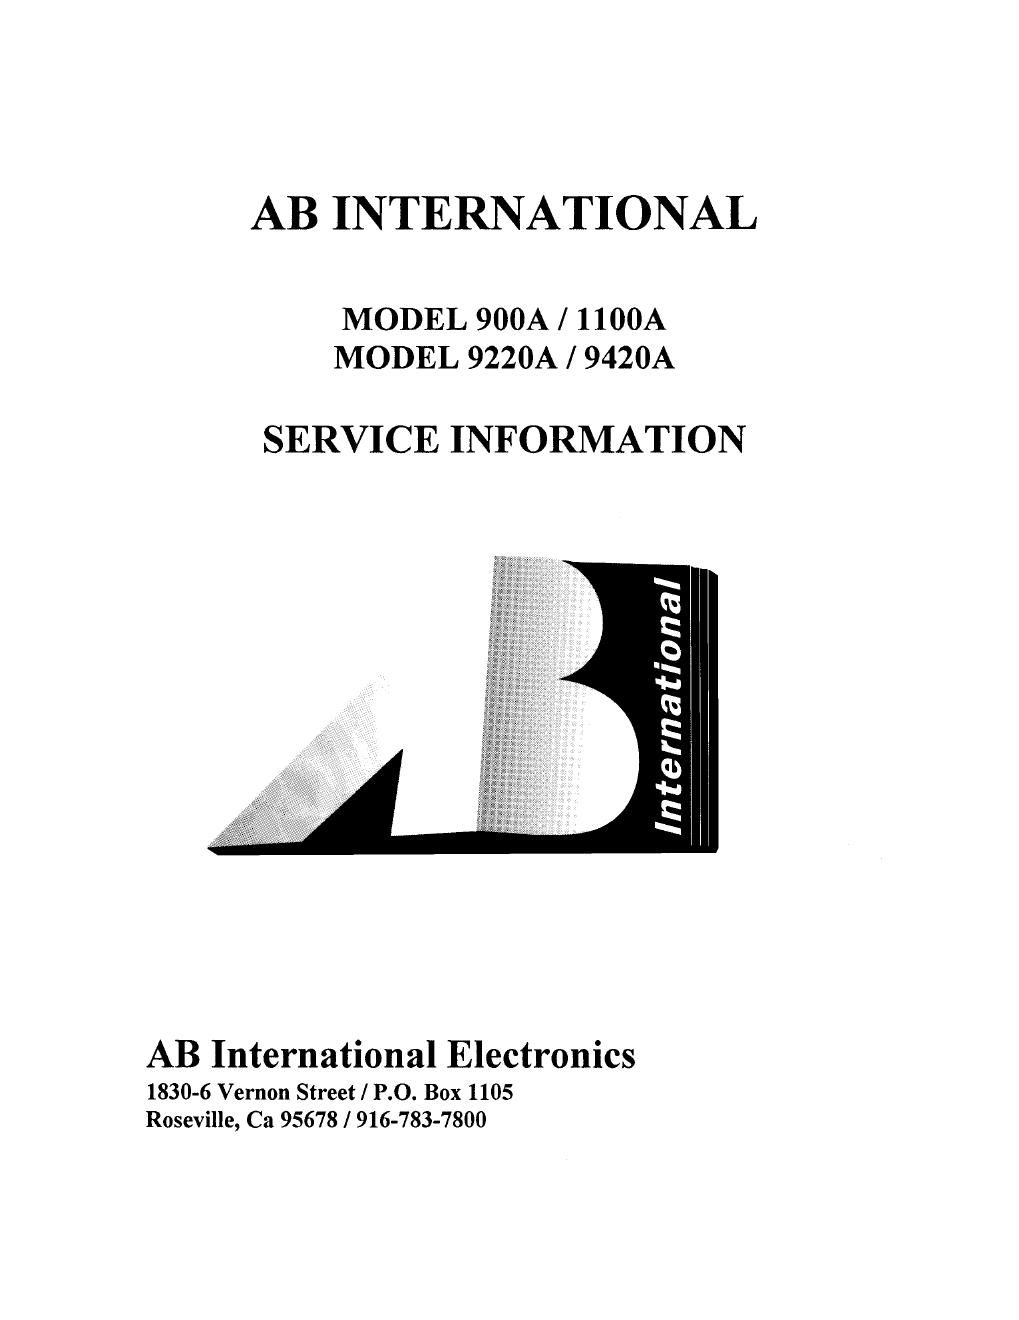 ab international 9420 a service manual